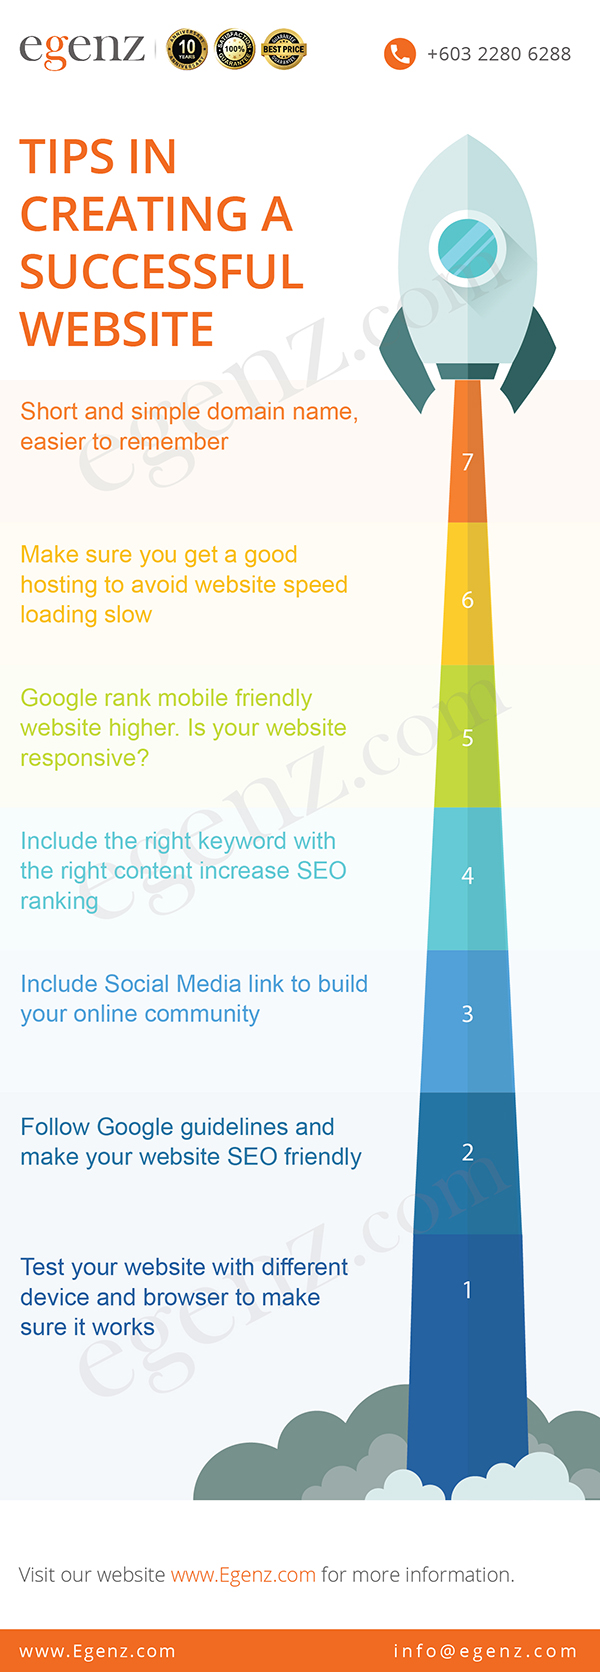 Infographic-Tips-In-Creating-A-Successful-Website-Egenz.com